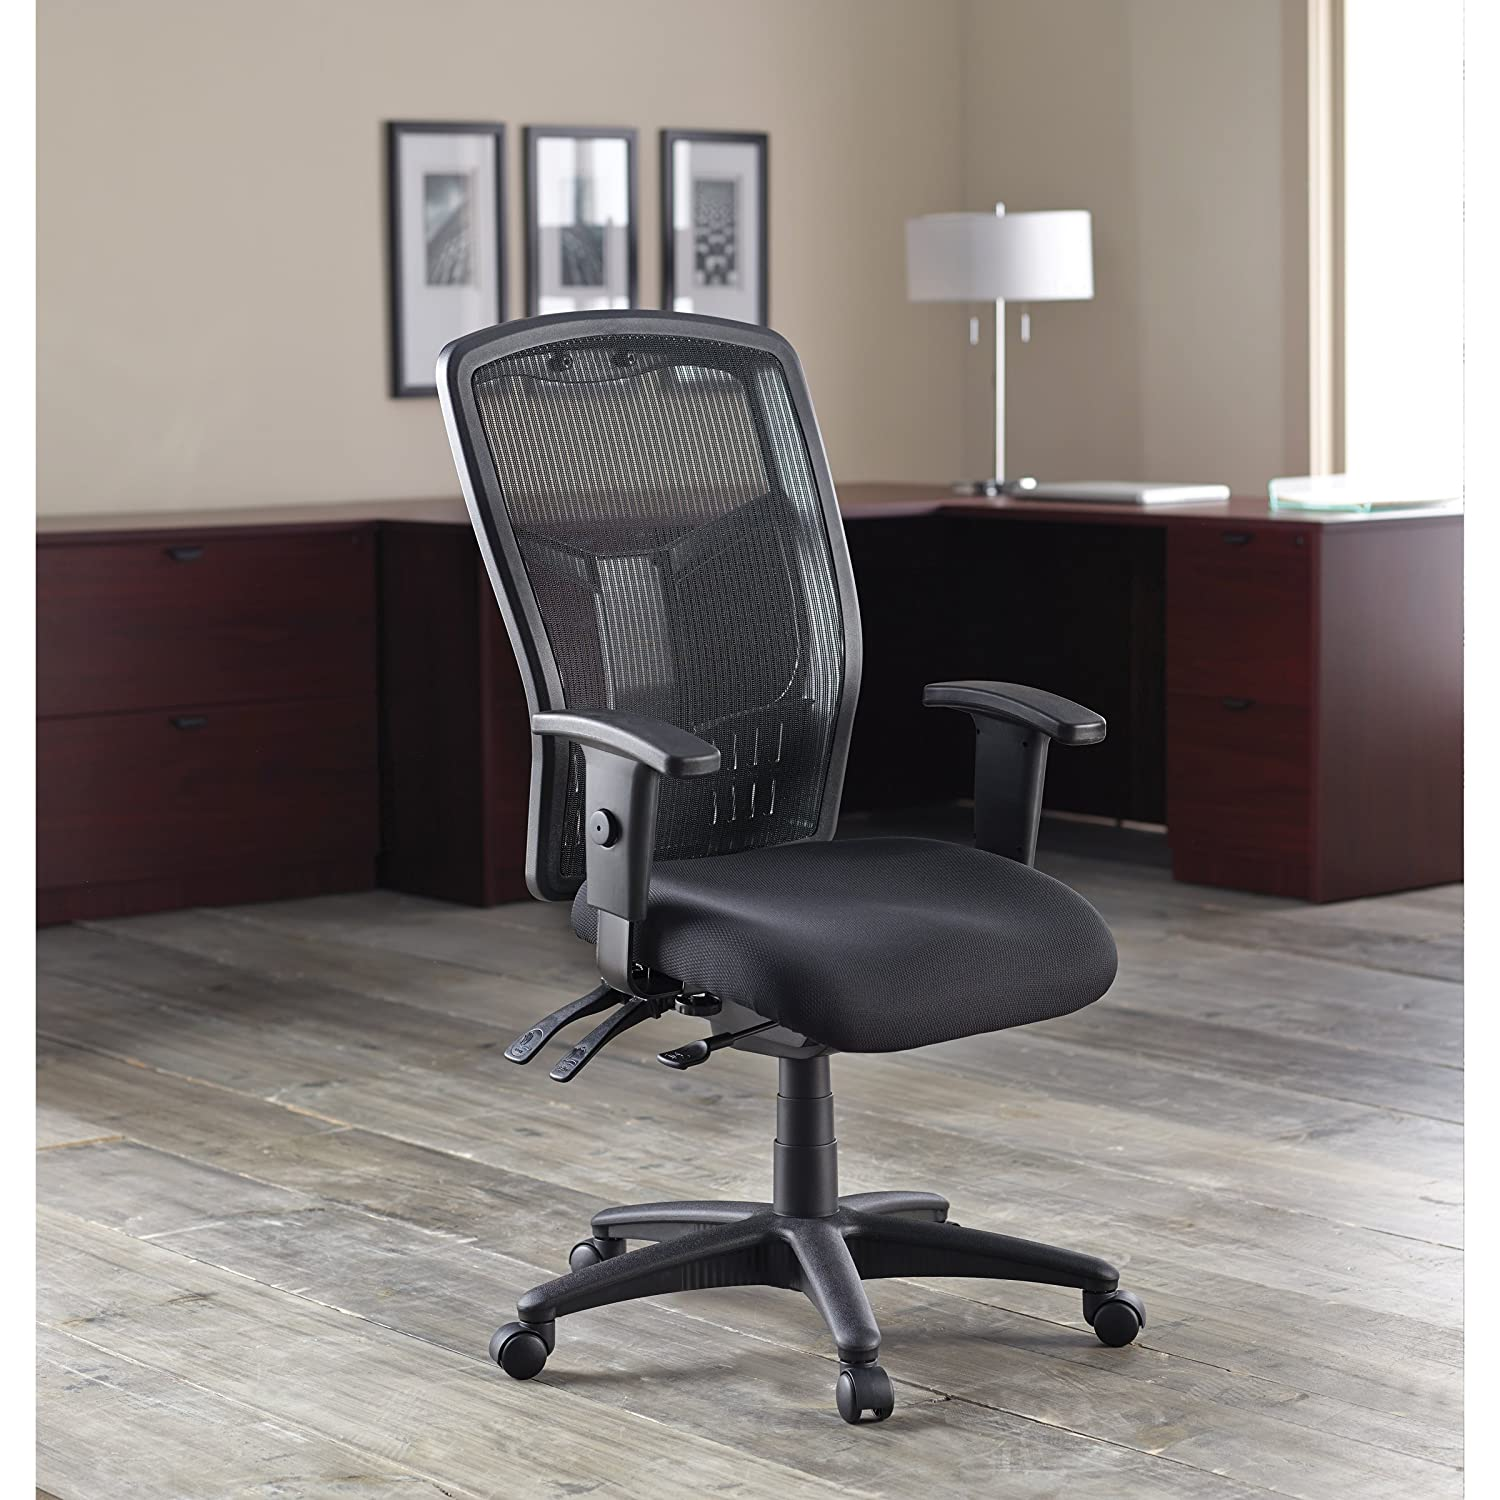 Lorell Executive High-Back Chair - Mesh Fabric - 28-1-2x28-1-2x45 - BK